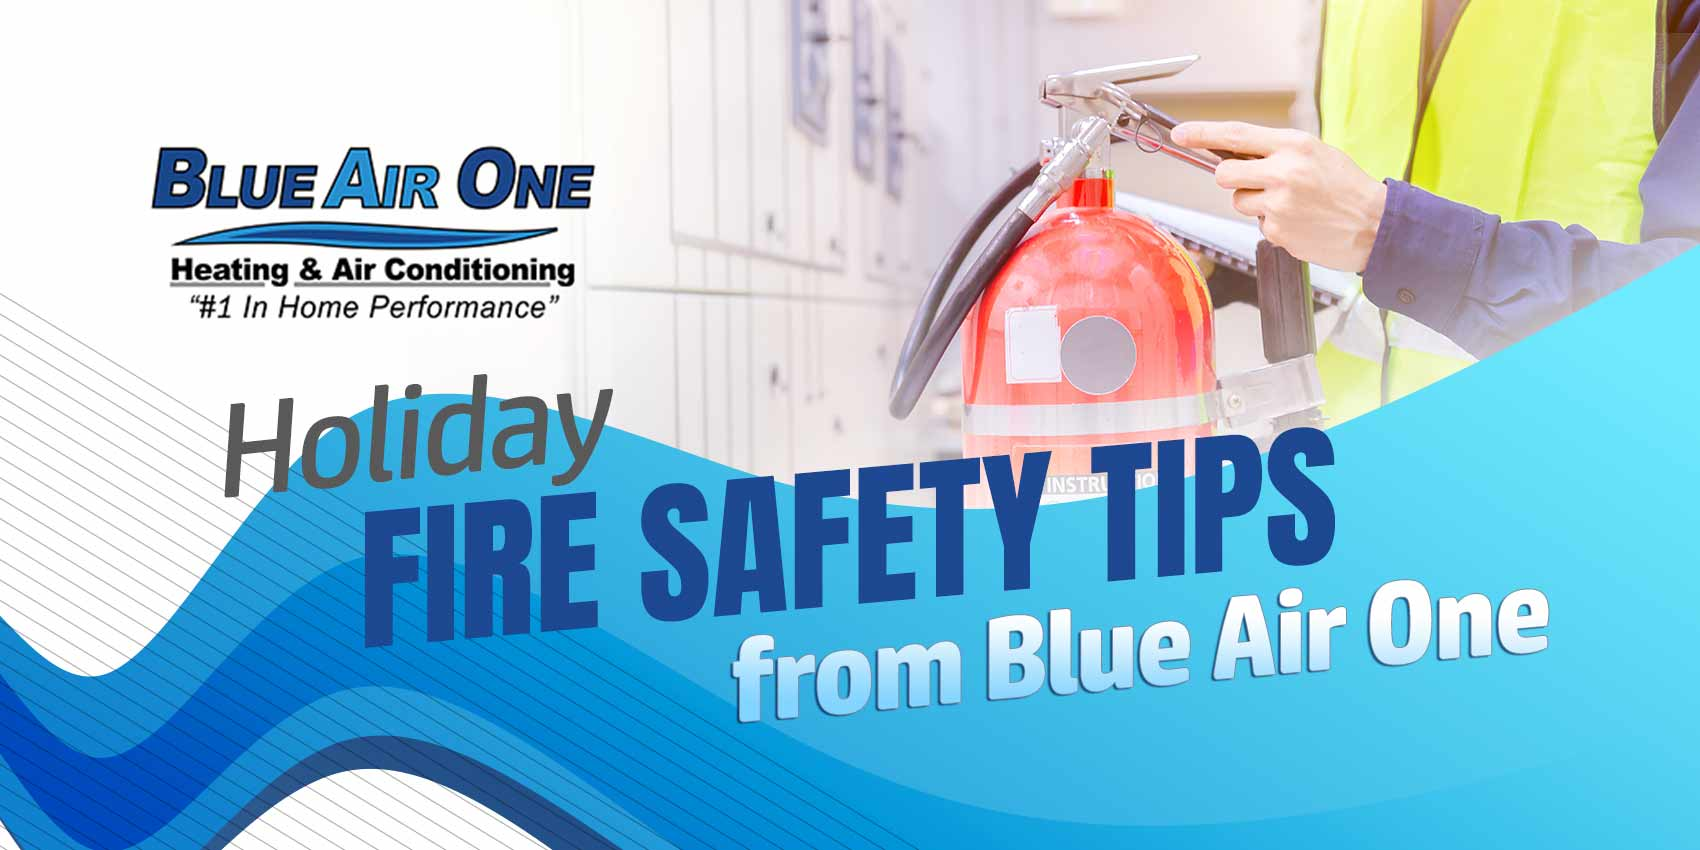 Holiday Fire Safety Tips From Blue Air One